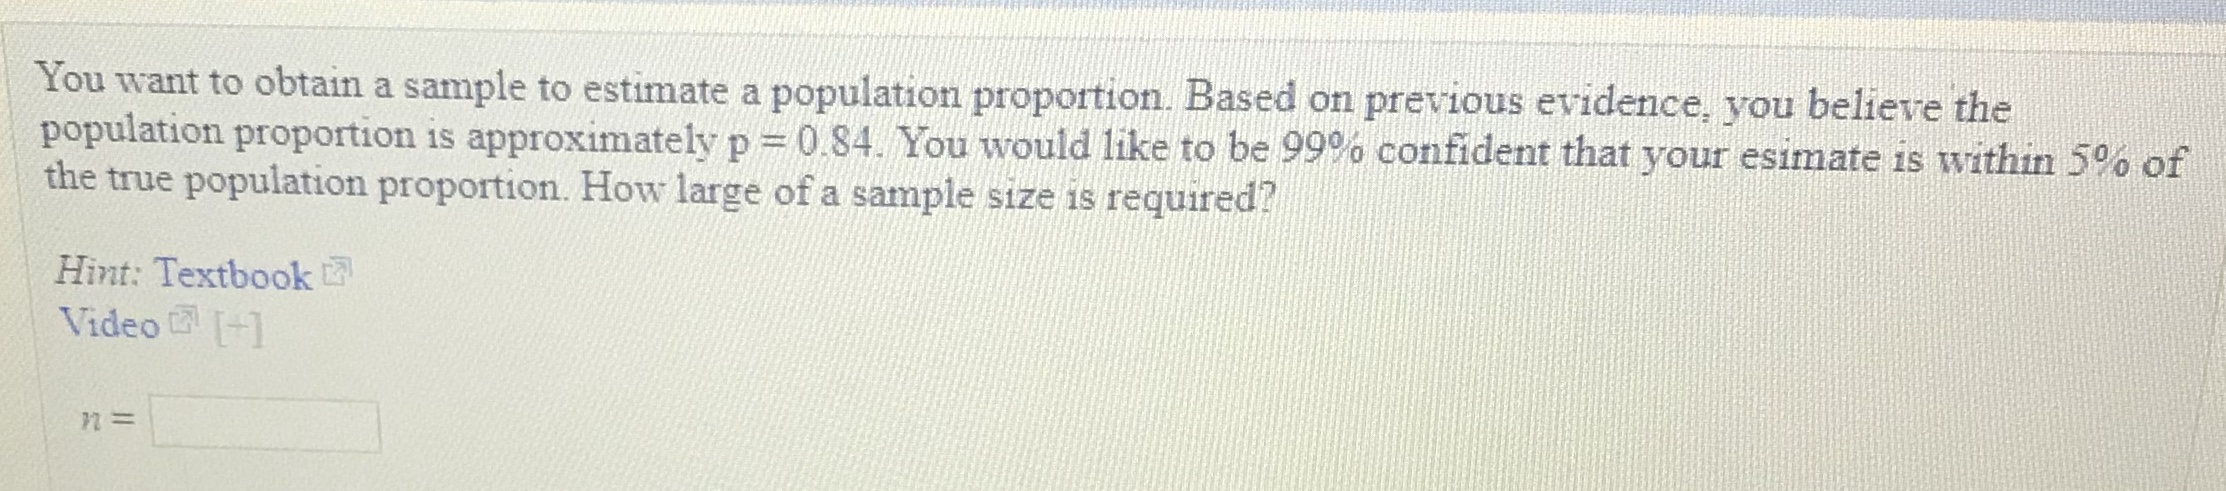 You want to obtain a sample to estimate a population proportion. Based on previous evidence, you believe the population proportion is approximately p :: 0.84. You would like to be 99% confident that your esimate is within 5% of ue population proportion. How large of a sample size is required? Hint: Textbook Video1